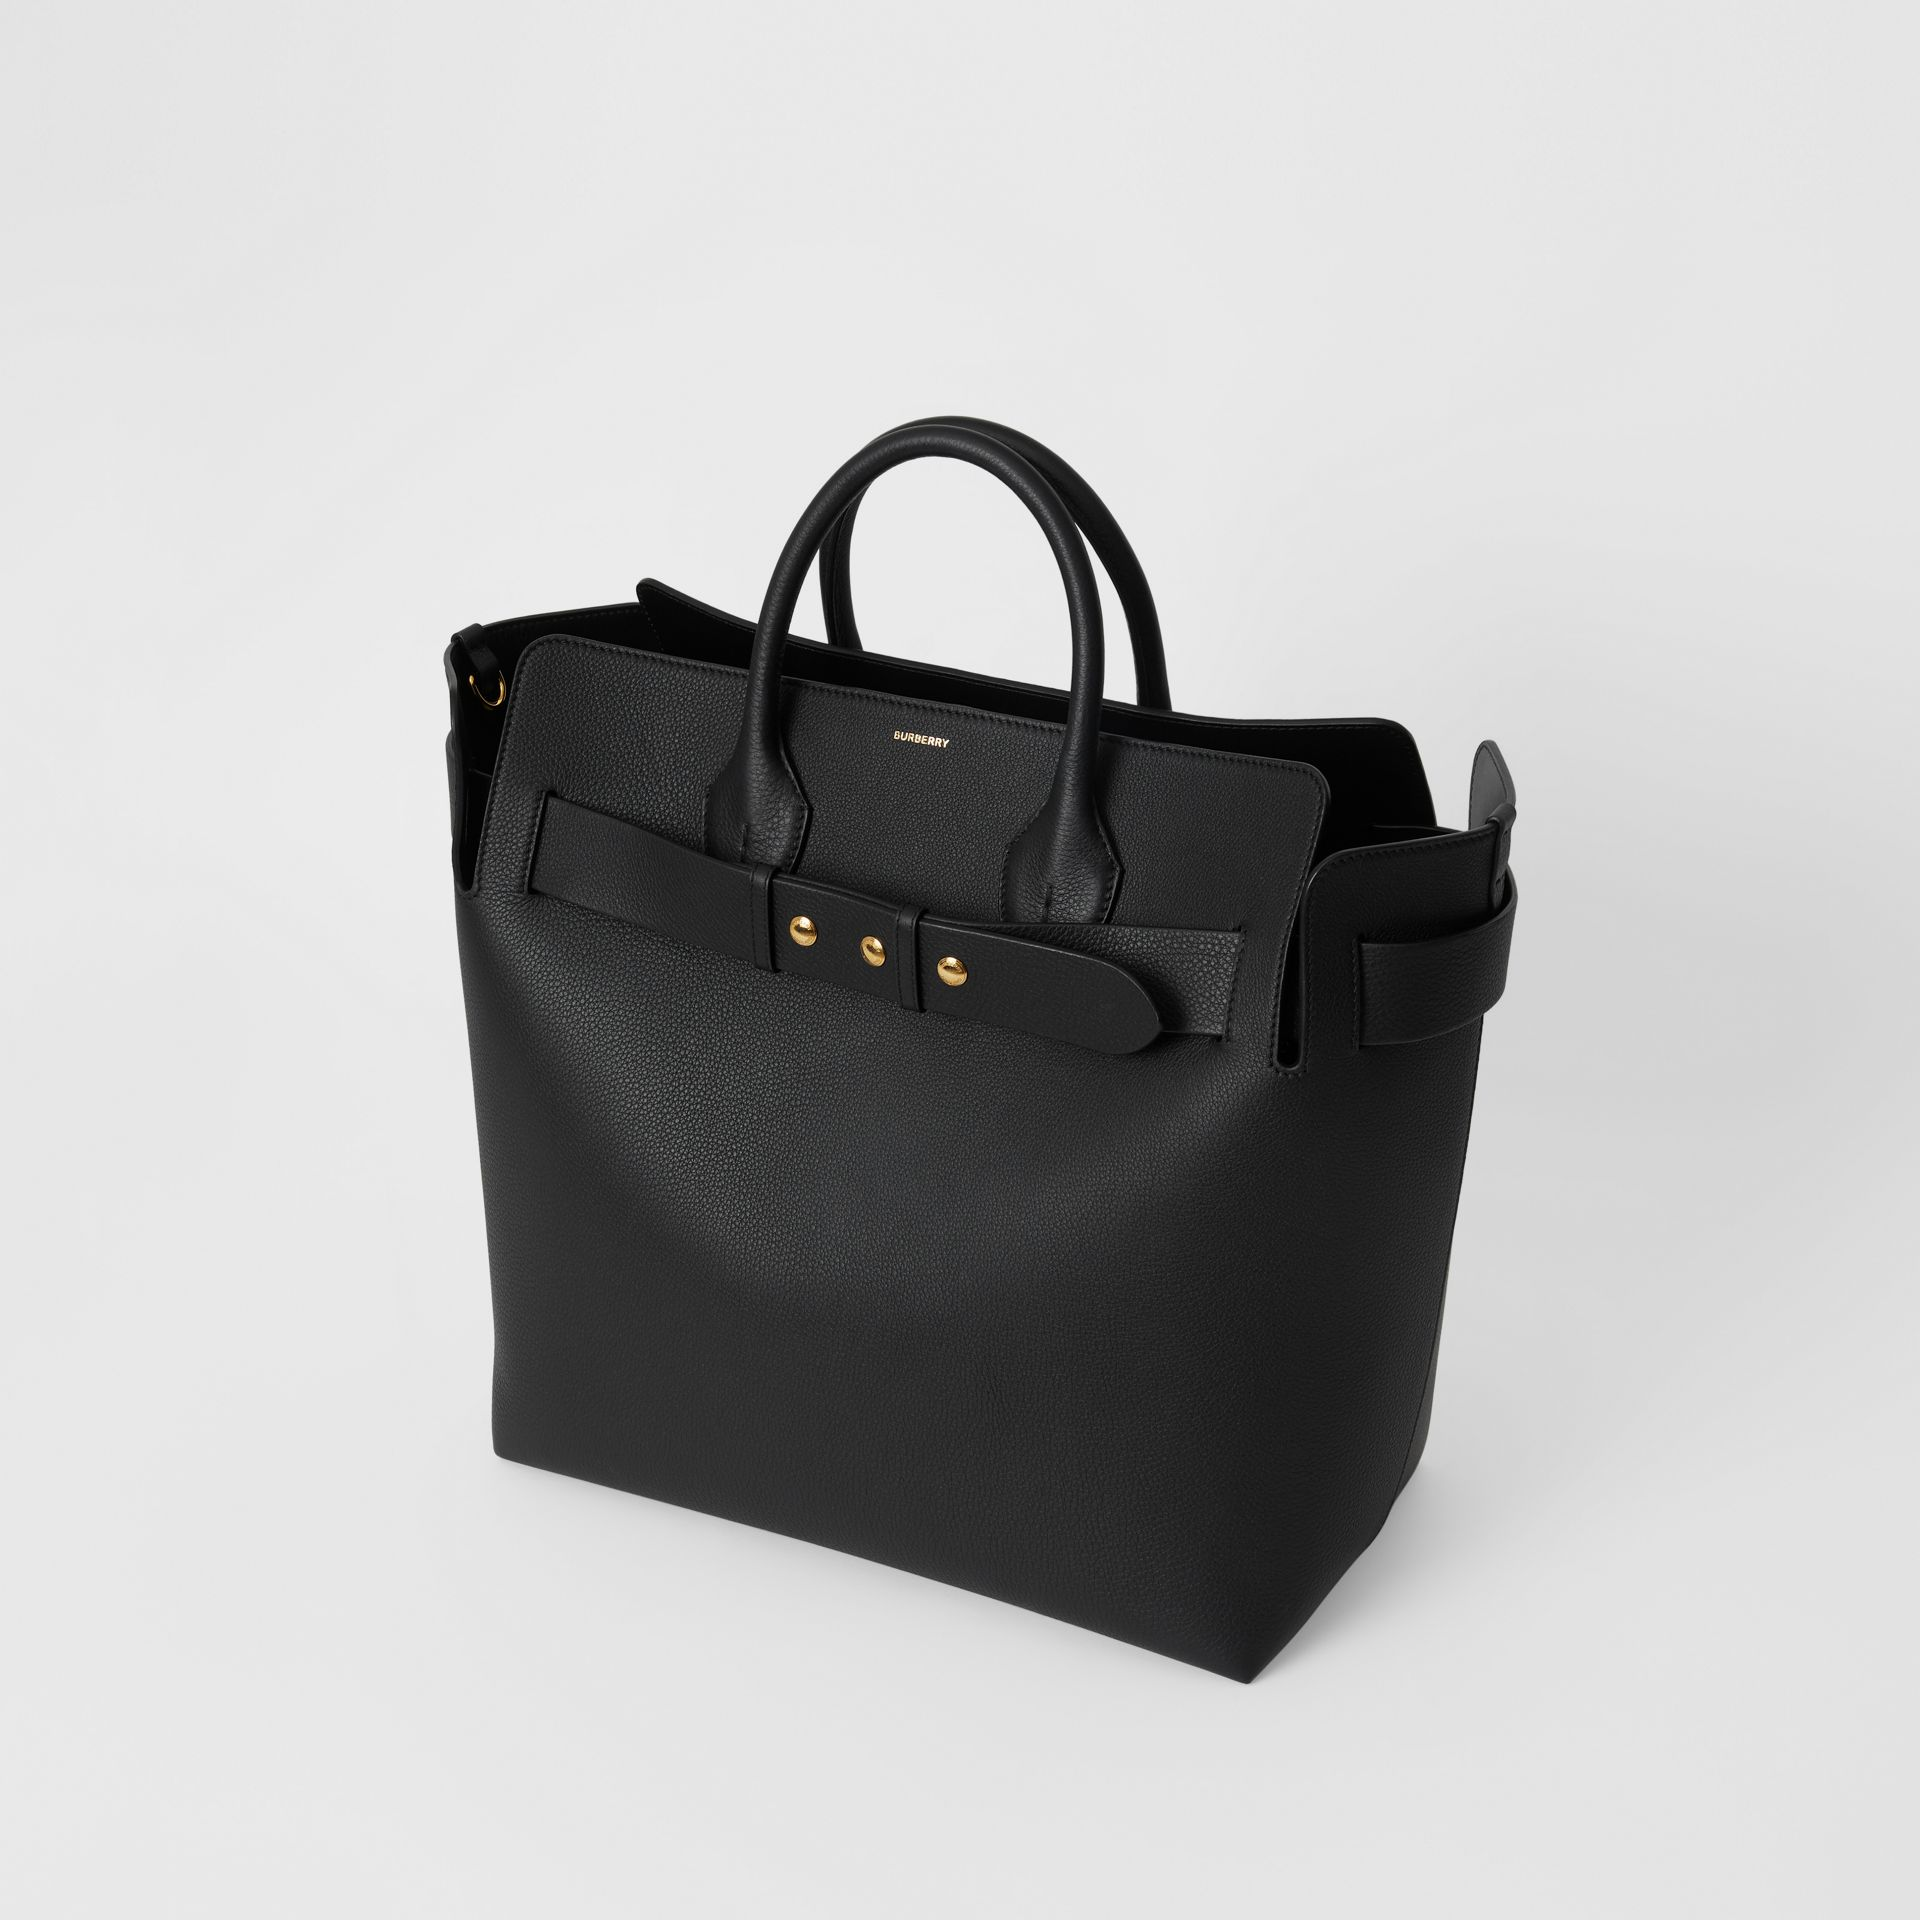 Borsa The Belt grande in pelle con tre borchie (Nero) - Donna | Burberry - immagine della galleria 4